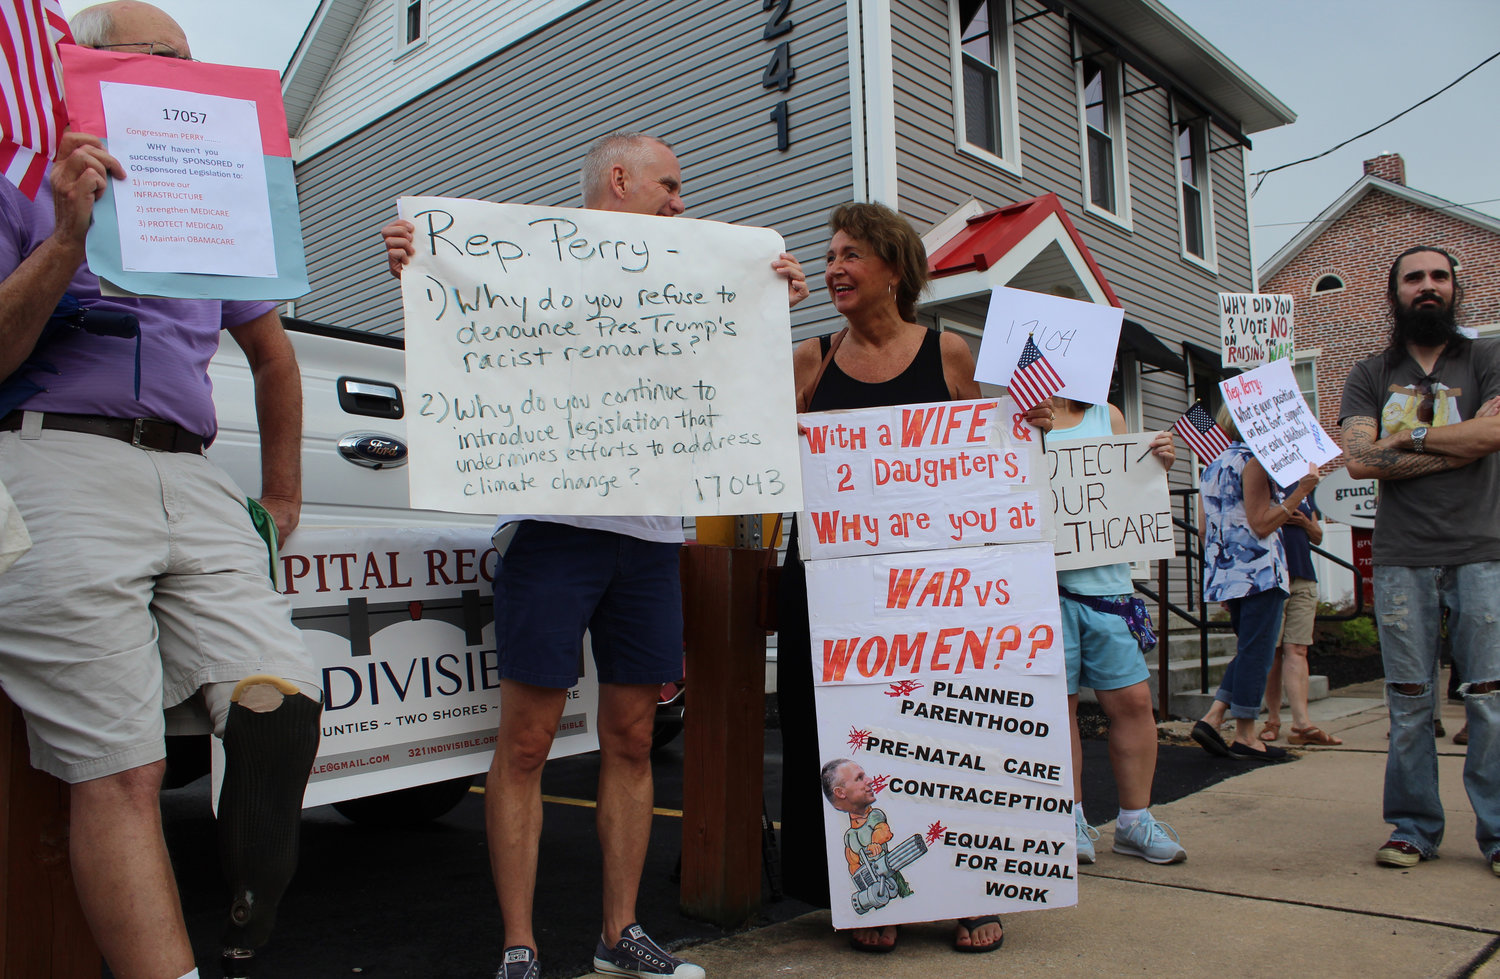 Protesters lined up in front of the Hummelstown Fire Department to protest Congressman Scott Perry's town hall on July 30.